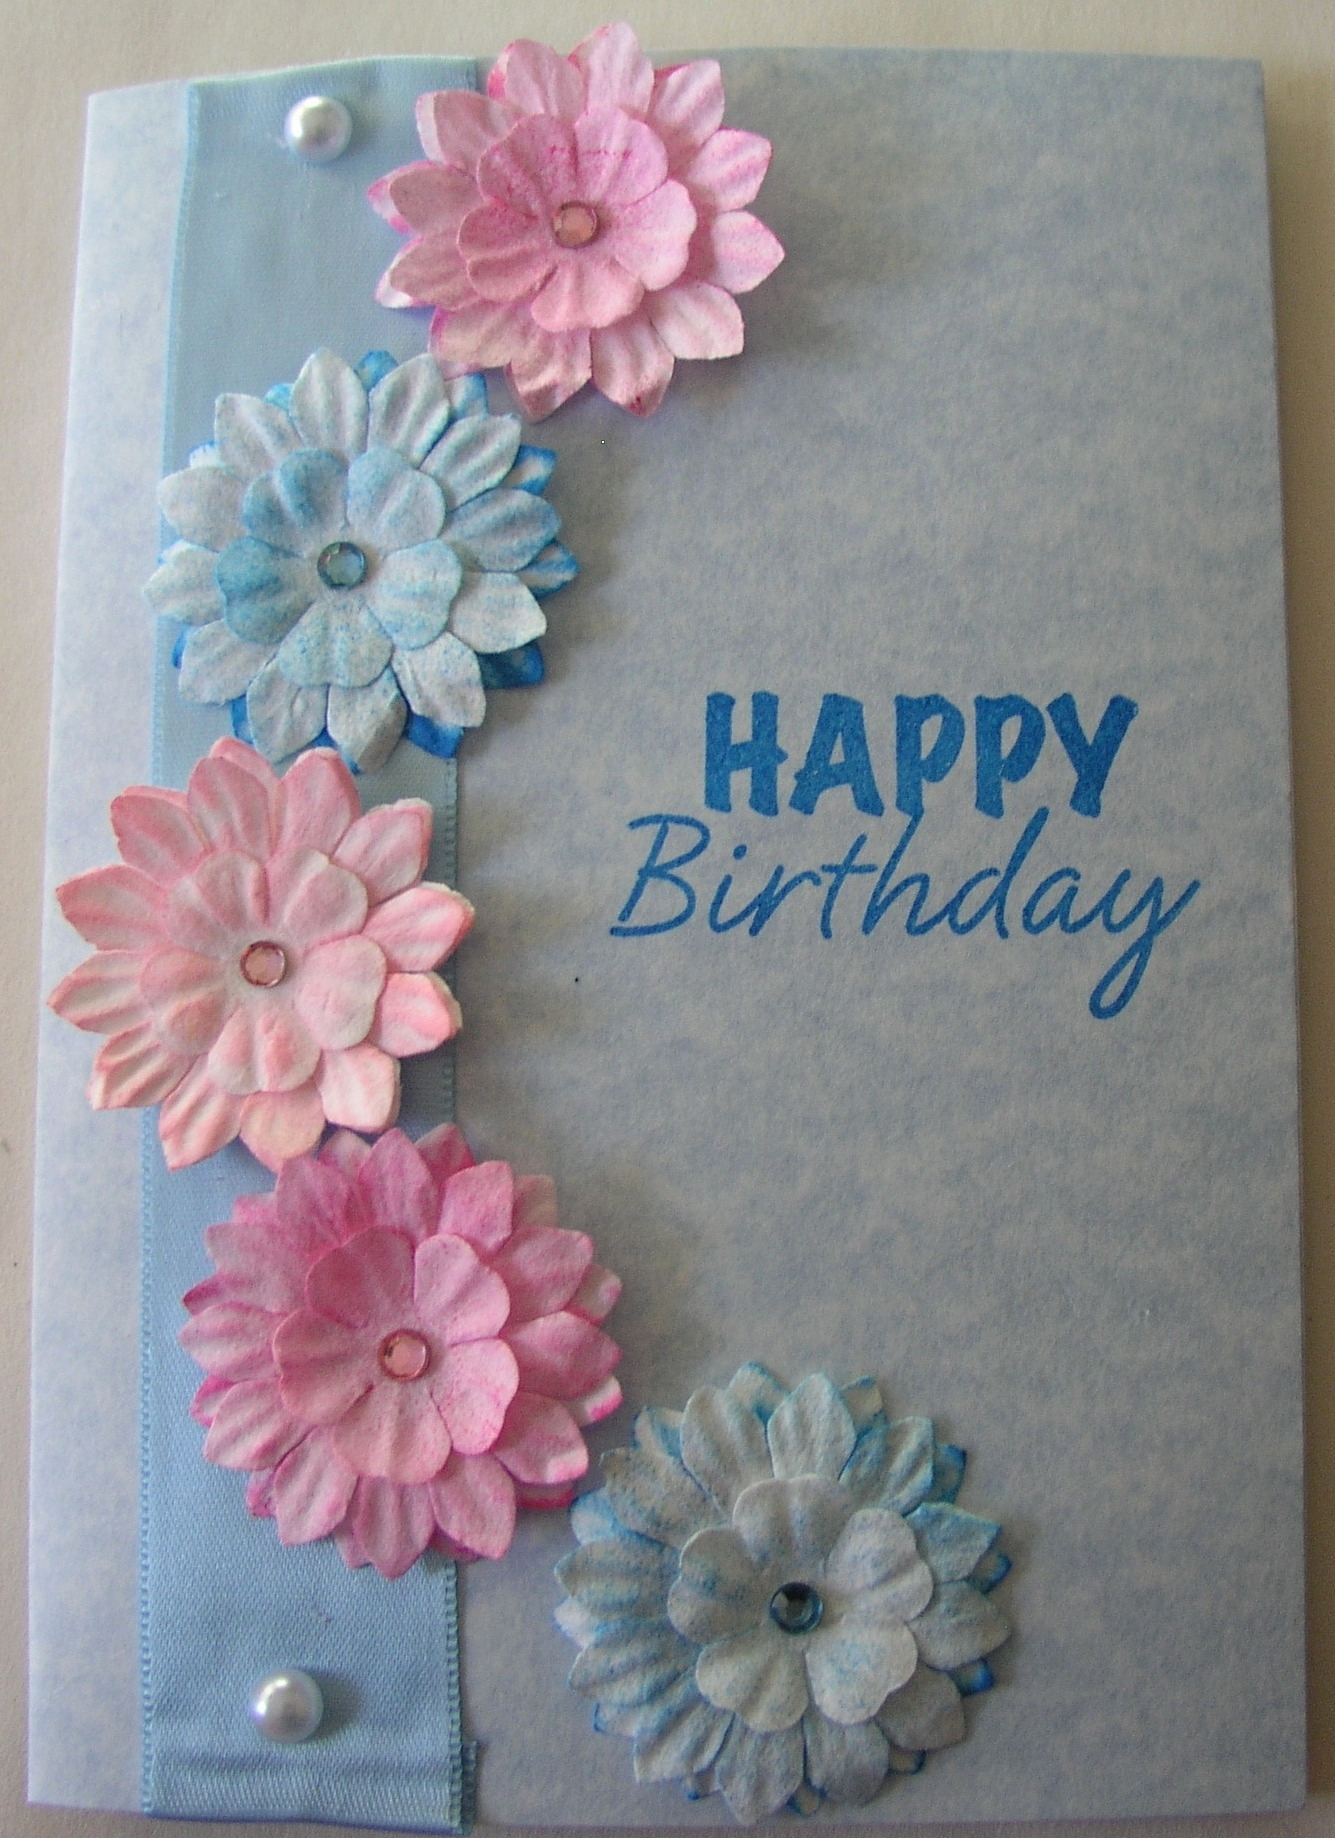 card making websites for free birthday ; card-making-websites-for-free-birthday-awesome-ideas-for-card-making-of-card-making-websites-for-free-birthday